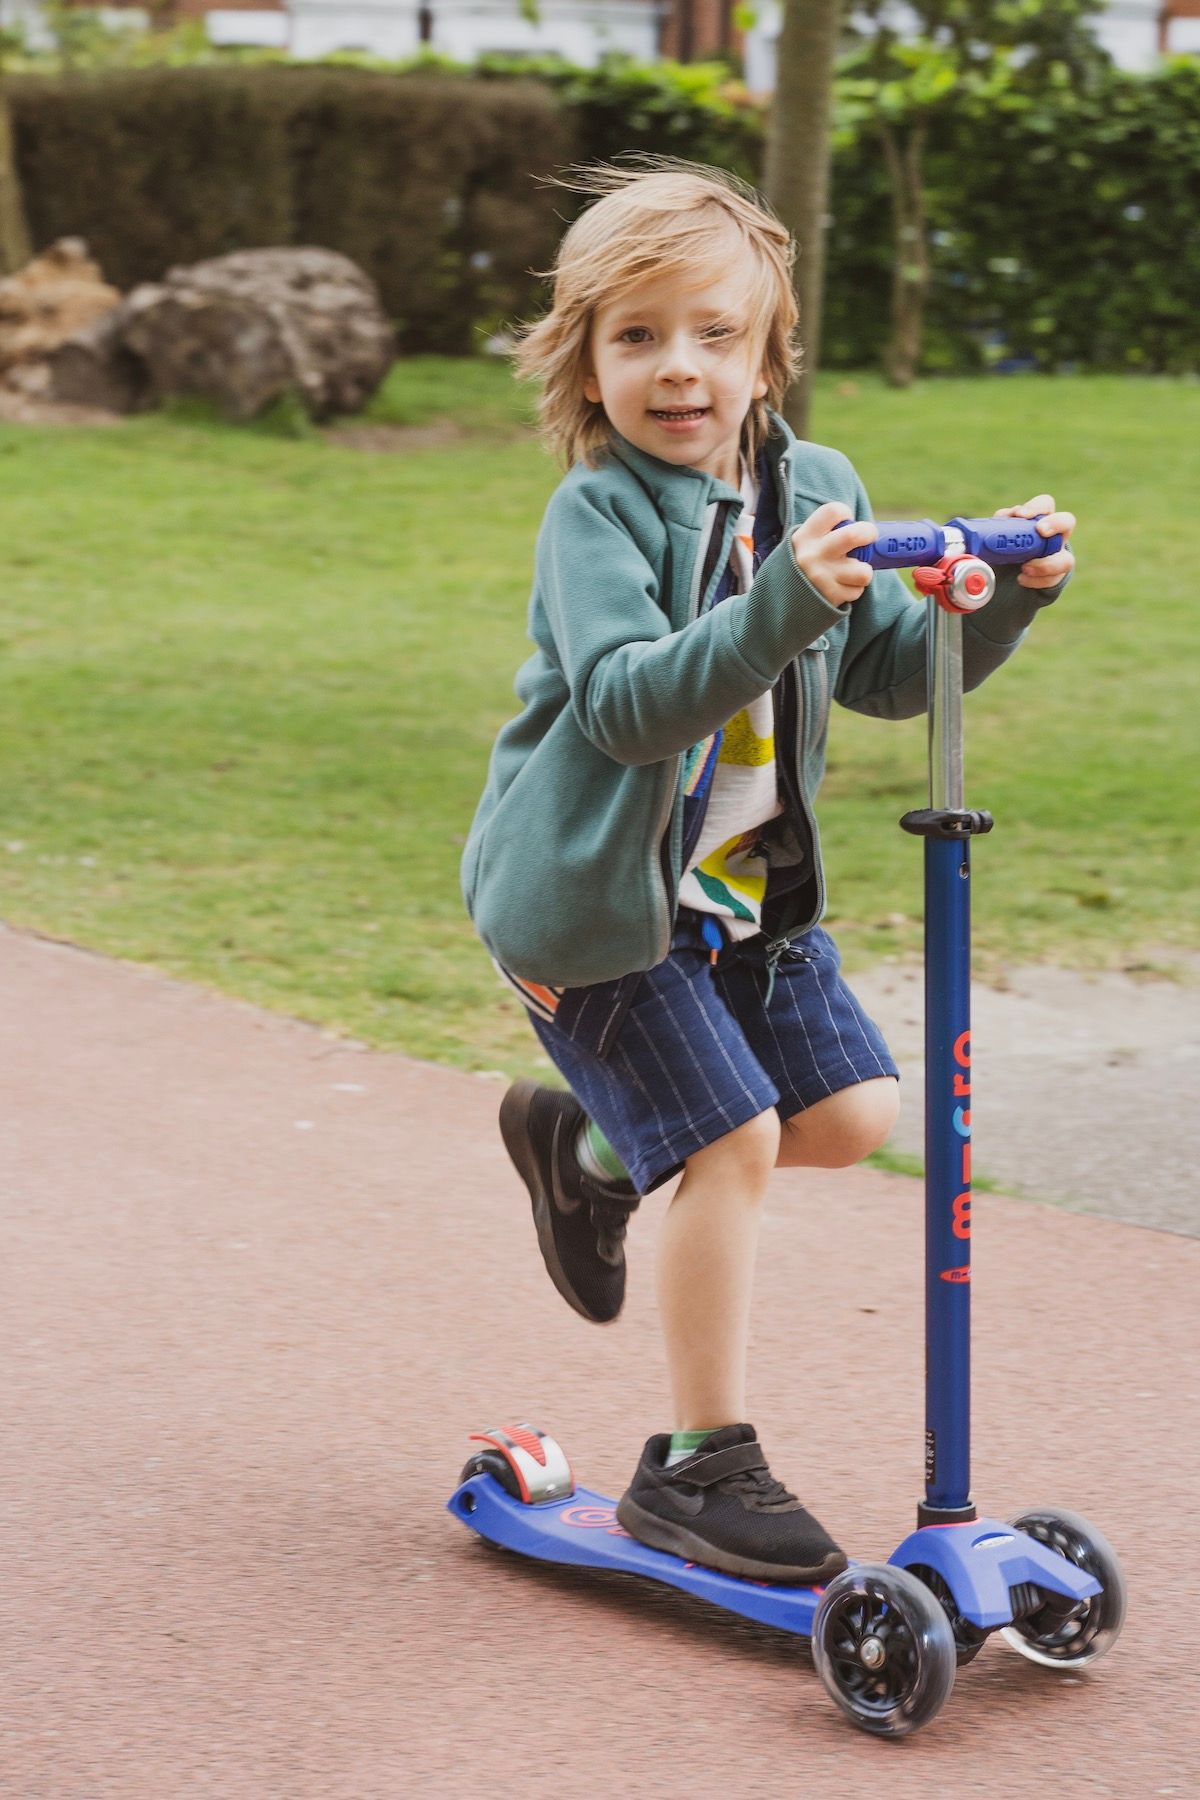 Scooting into the future - with the Micro Merlin